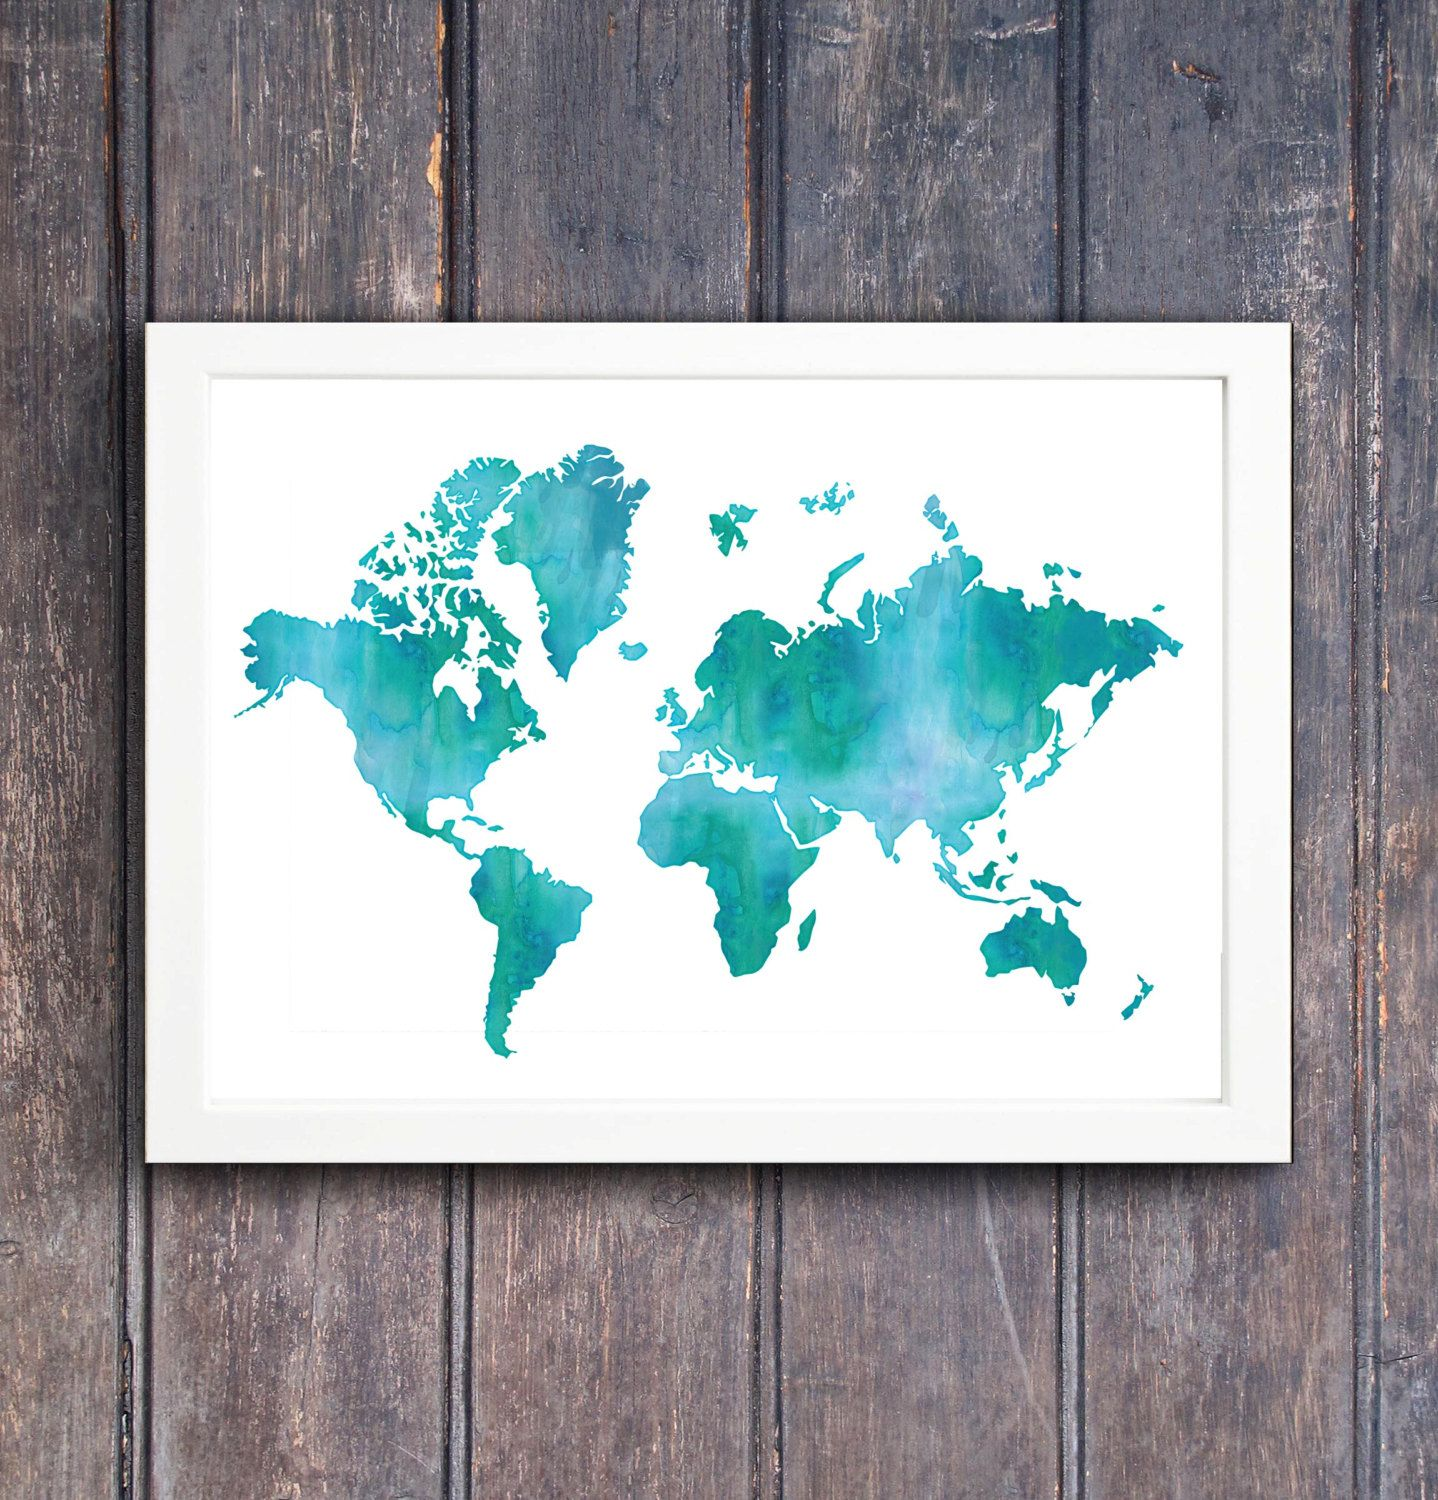 Large watercolor world map printable wall art instant download large watercolor world map printable wall art instant download 24x36 inches gumiabroncs Images